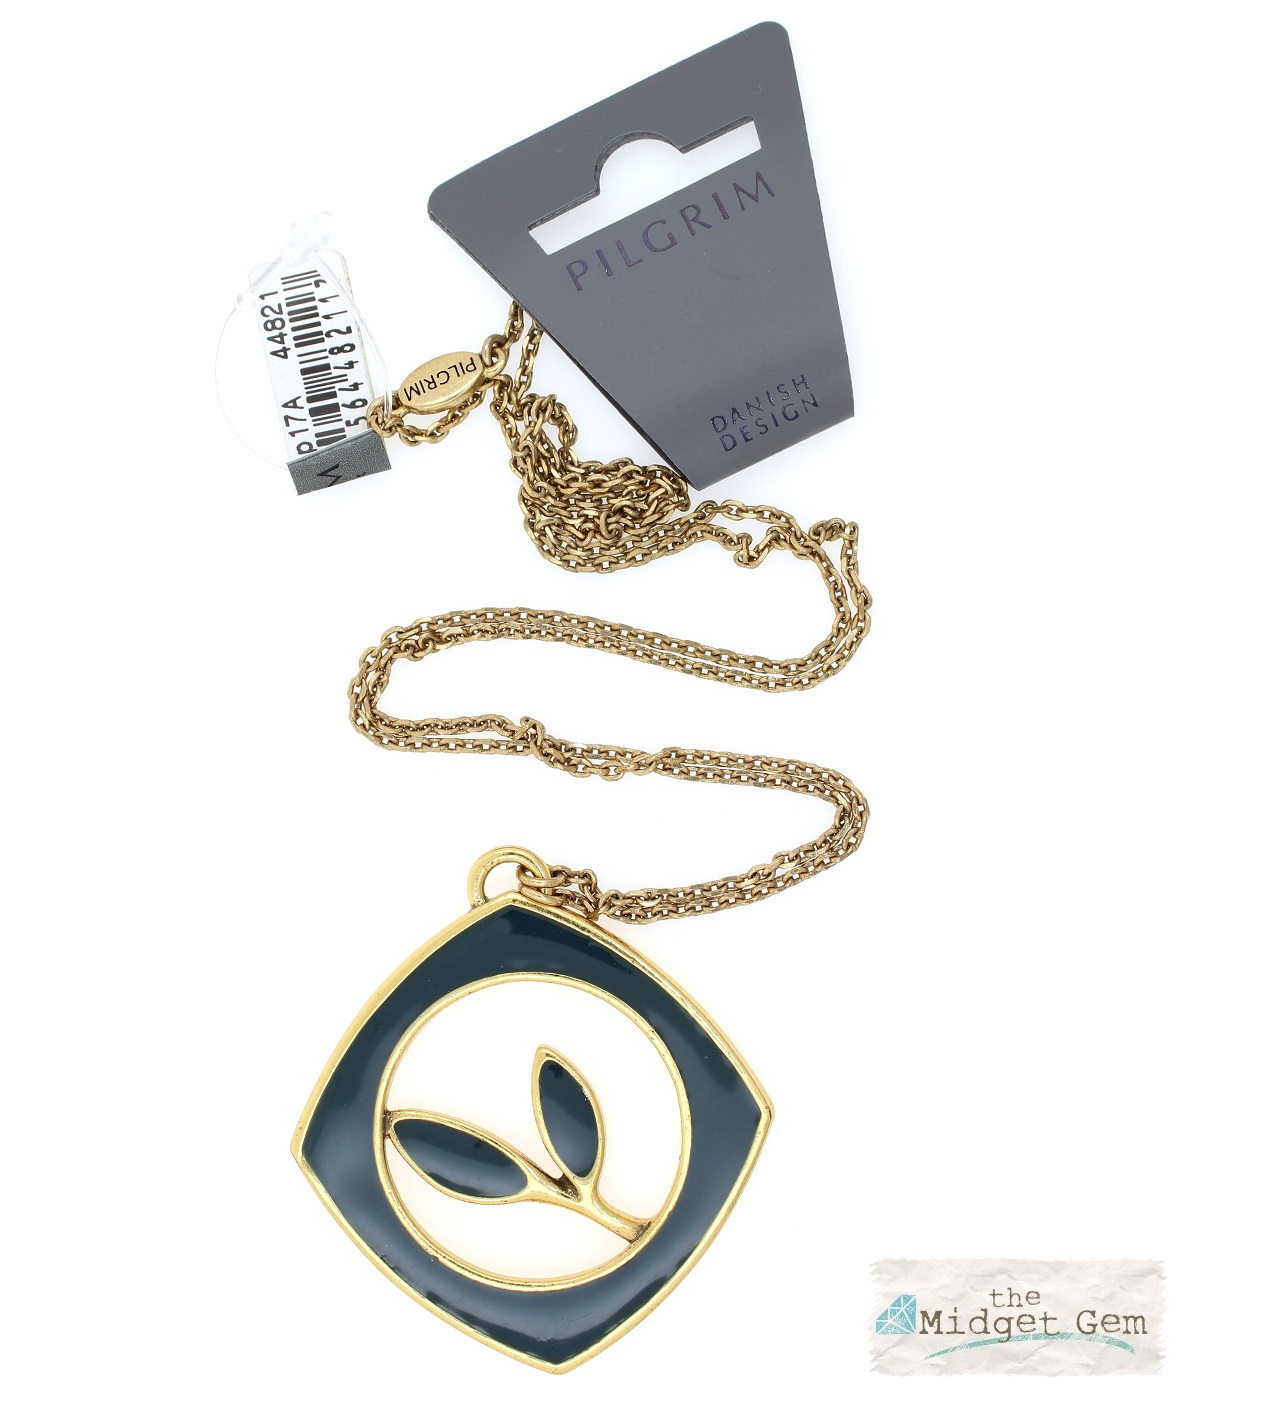 PILGRIM - Retro Elegance - Square Framed Leaf Necklace - Gold/Blue BNWT